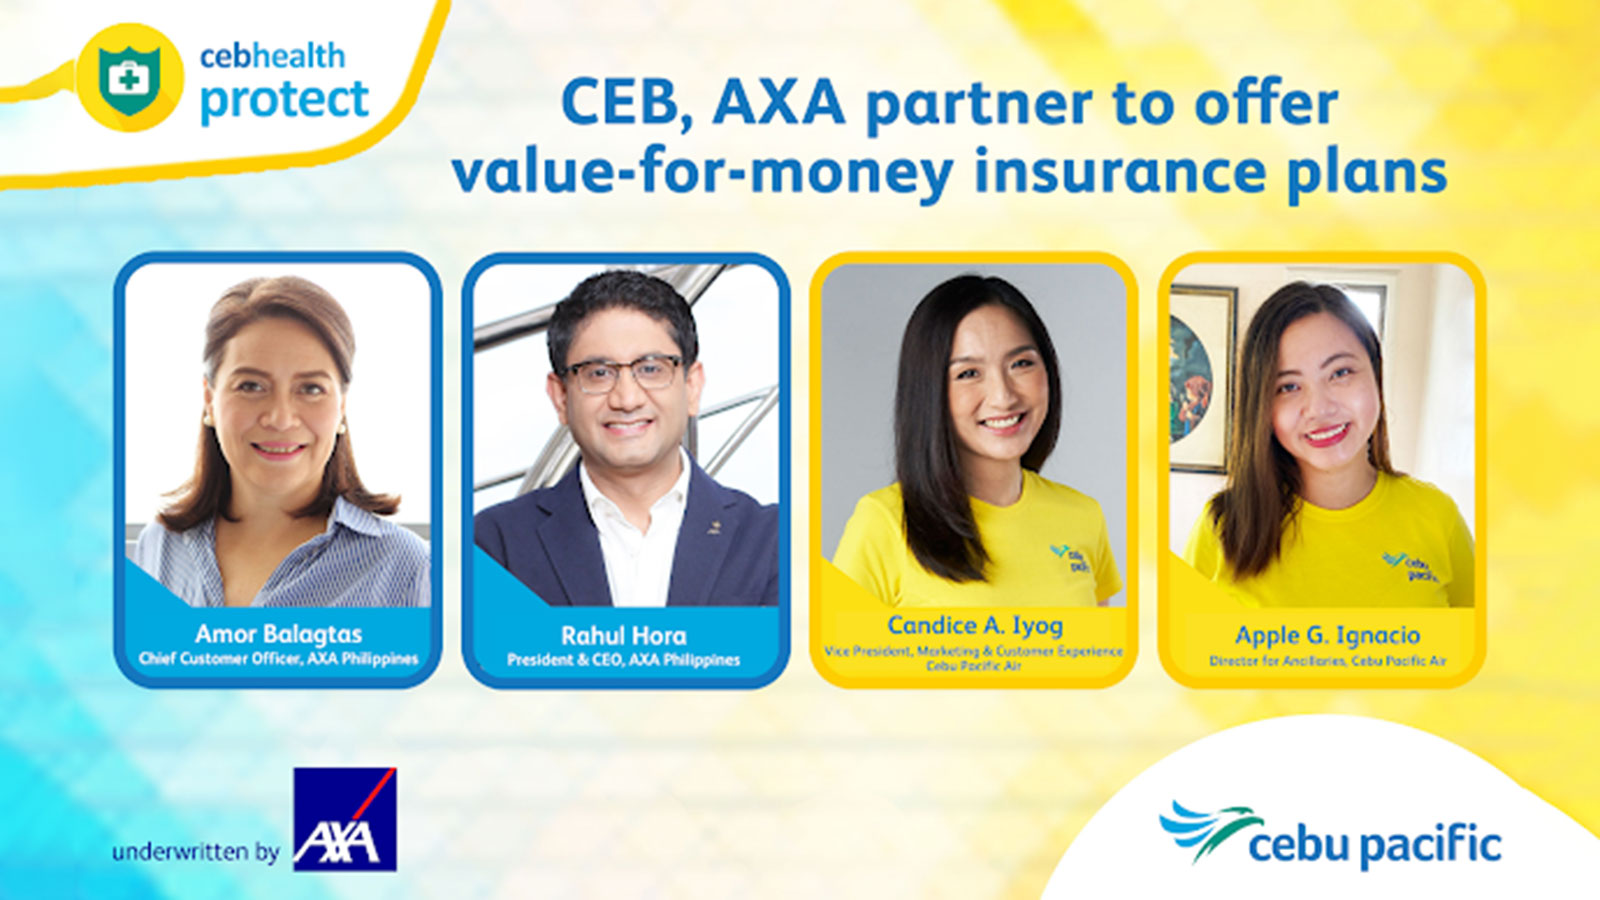 AXA Philippines launches CEB Health Protect with Cebu Pacific